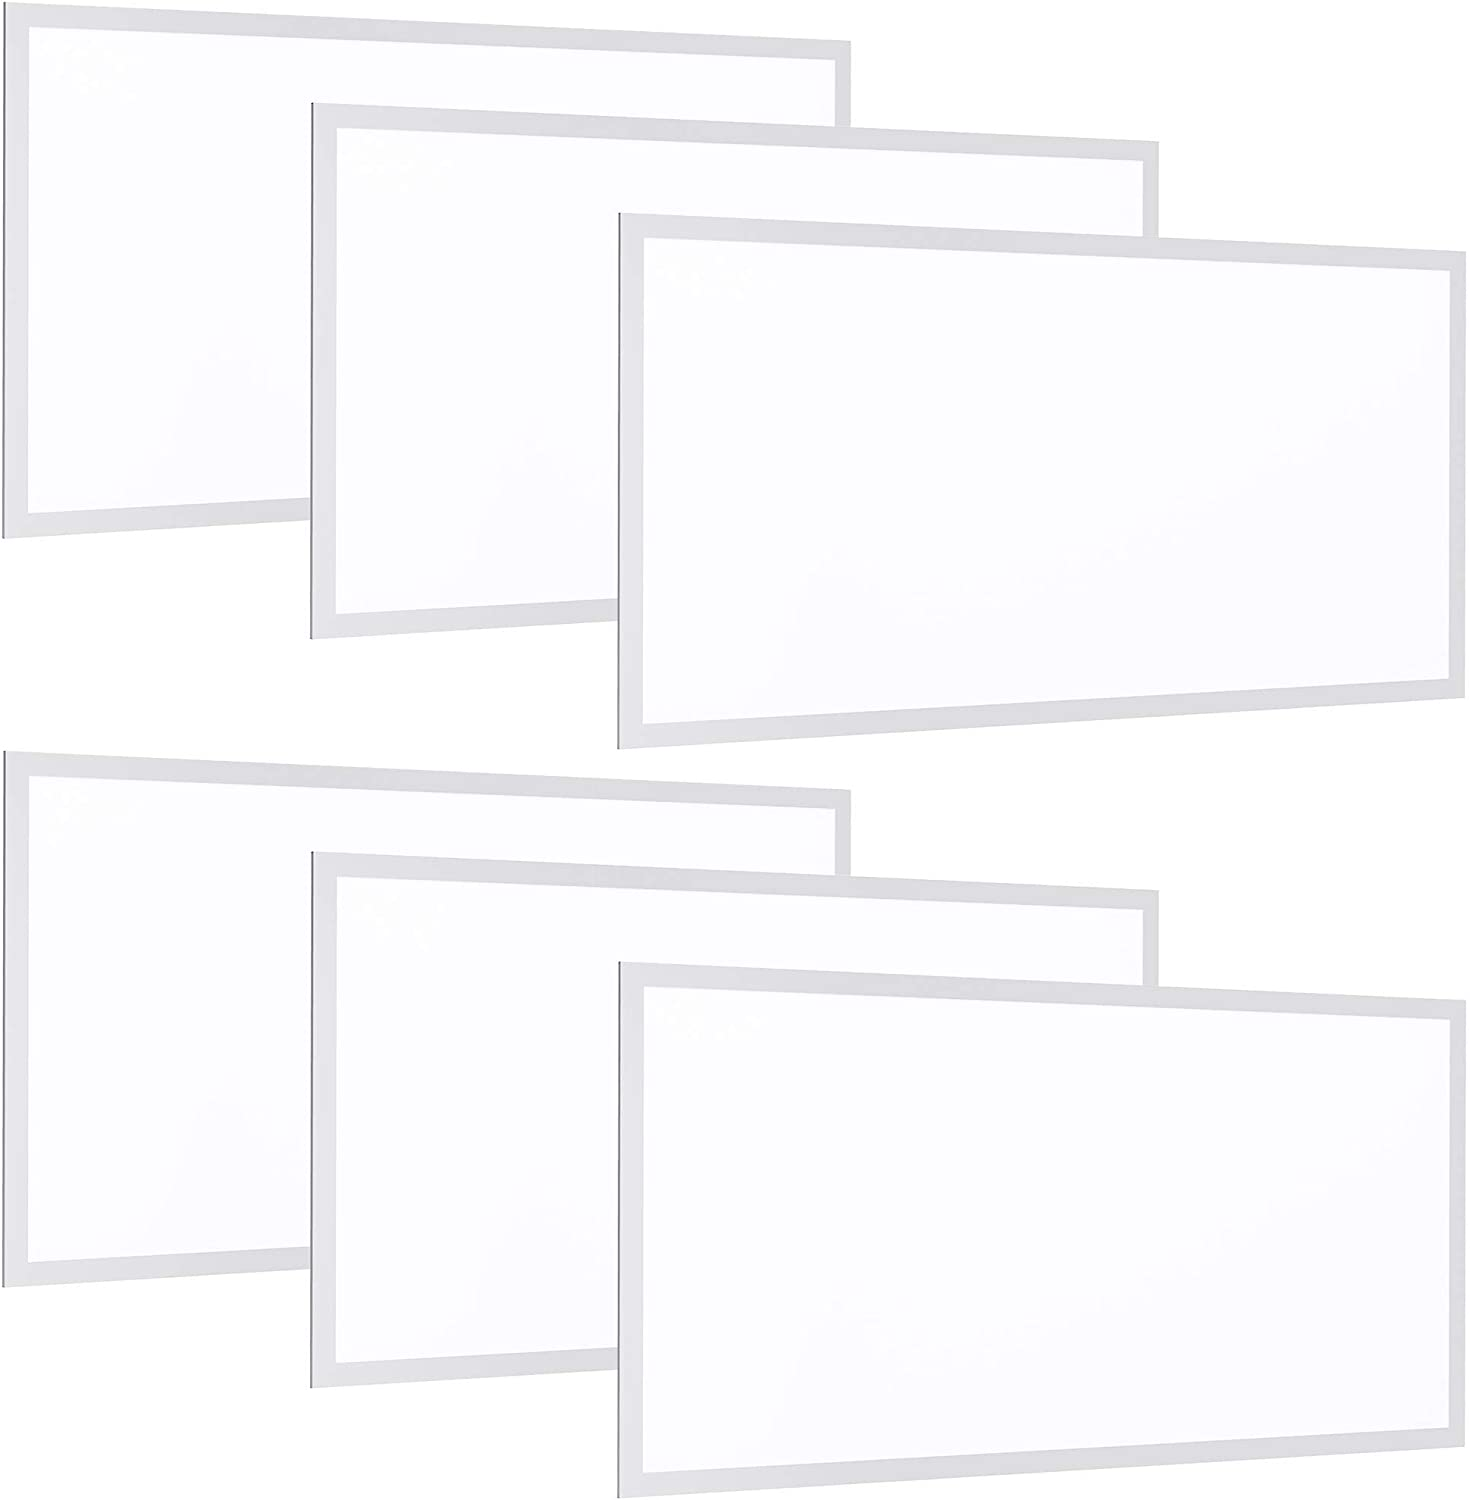 Sunco Lighting 6 Pack LED Ceiling Panel, 2x4 FT, 50W, Dimmable 0-10V, 5500 LM, 5000K Daylight,Flat Backlit Fixture, Direct Wire, Flush or Drop Ceiling Install, Dust Tight Commercial Grade - ETL, DLC